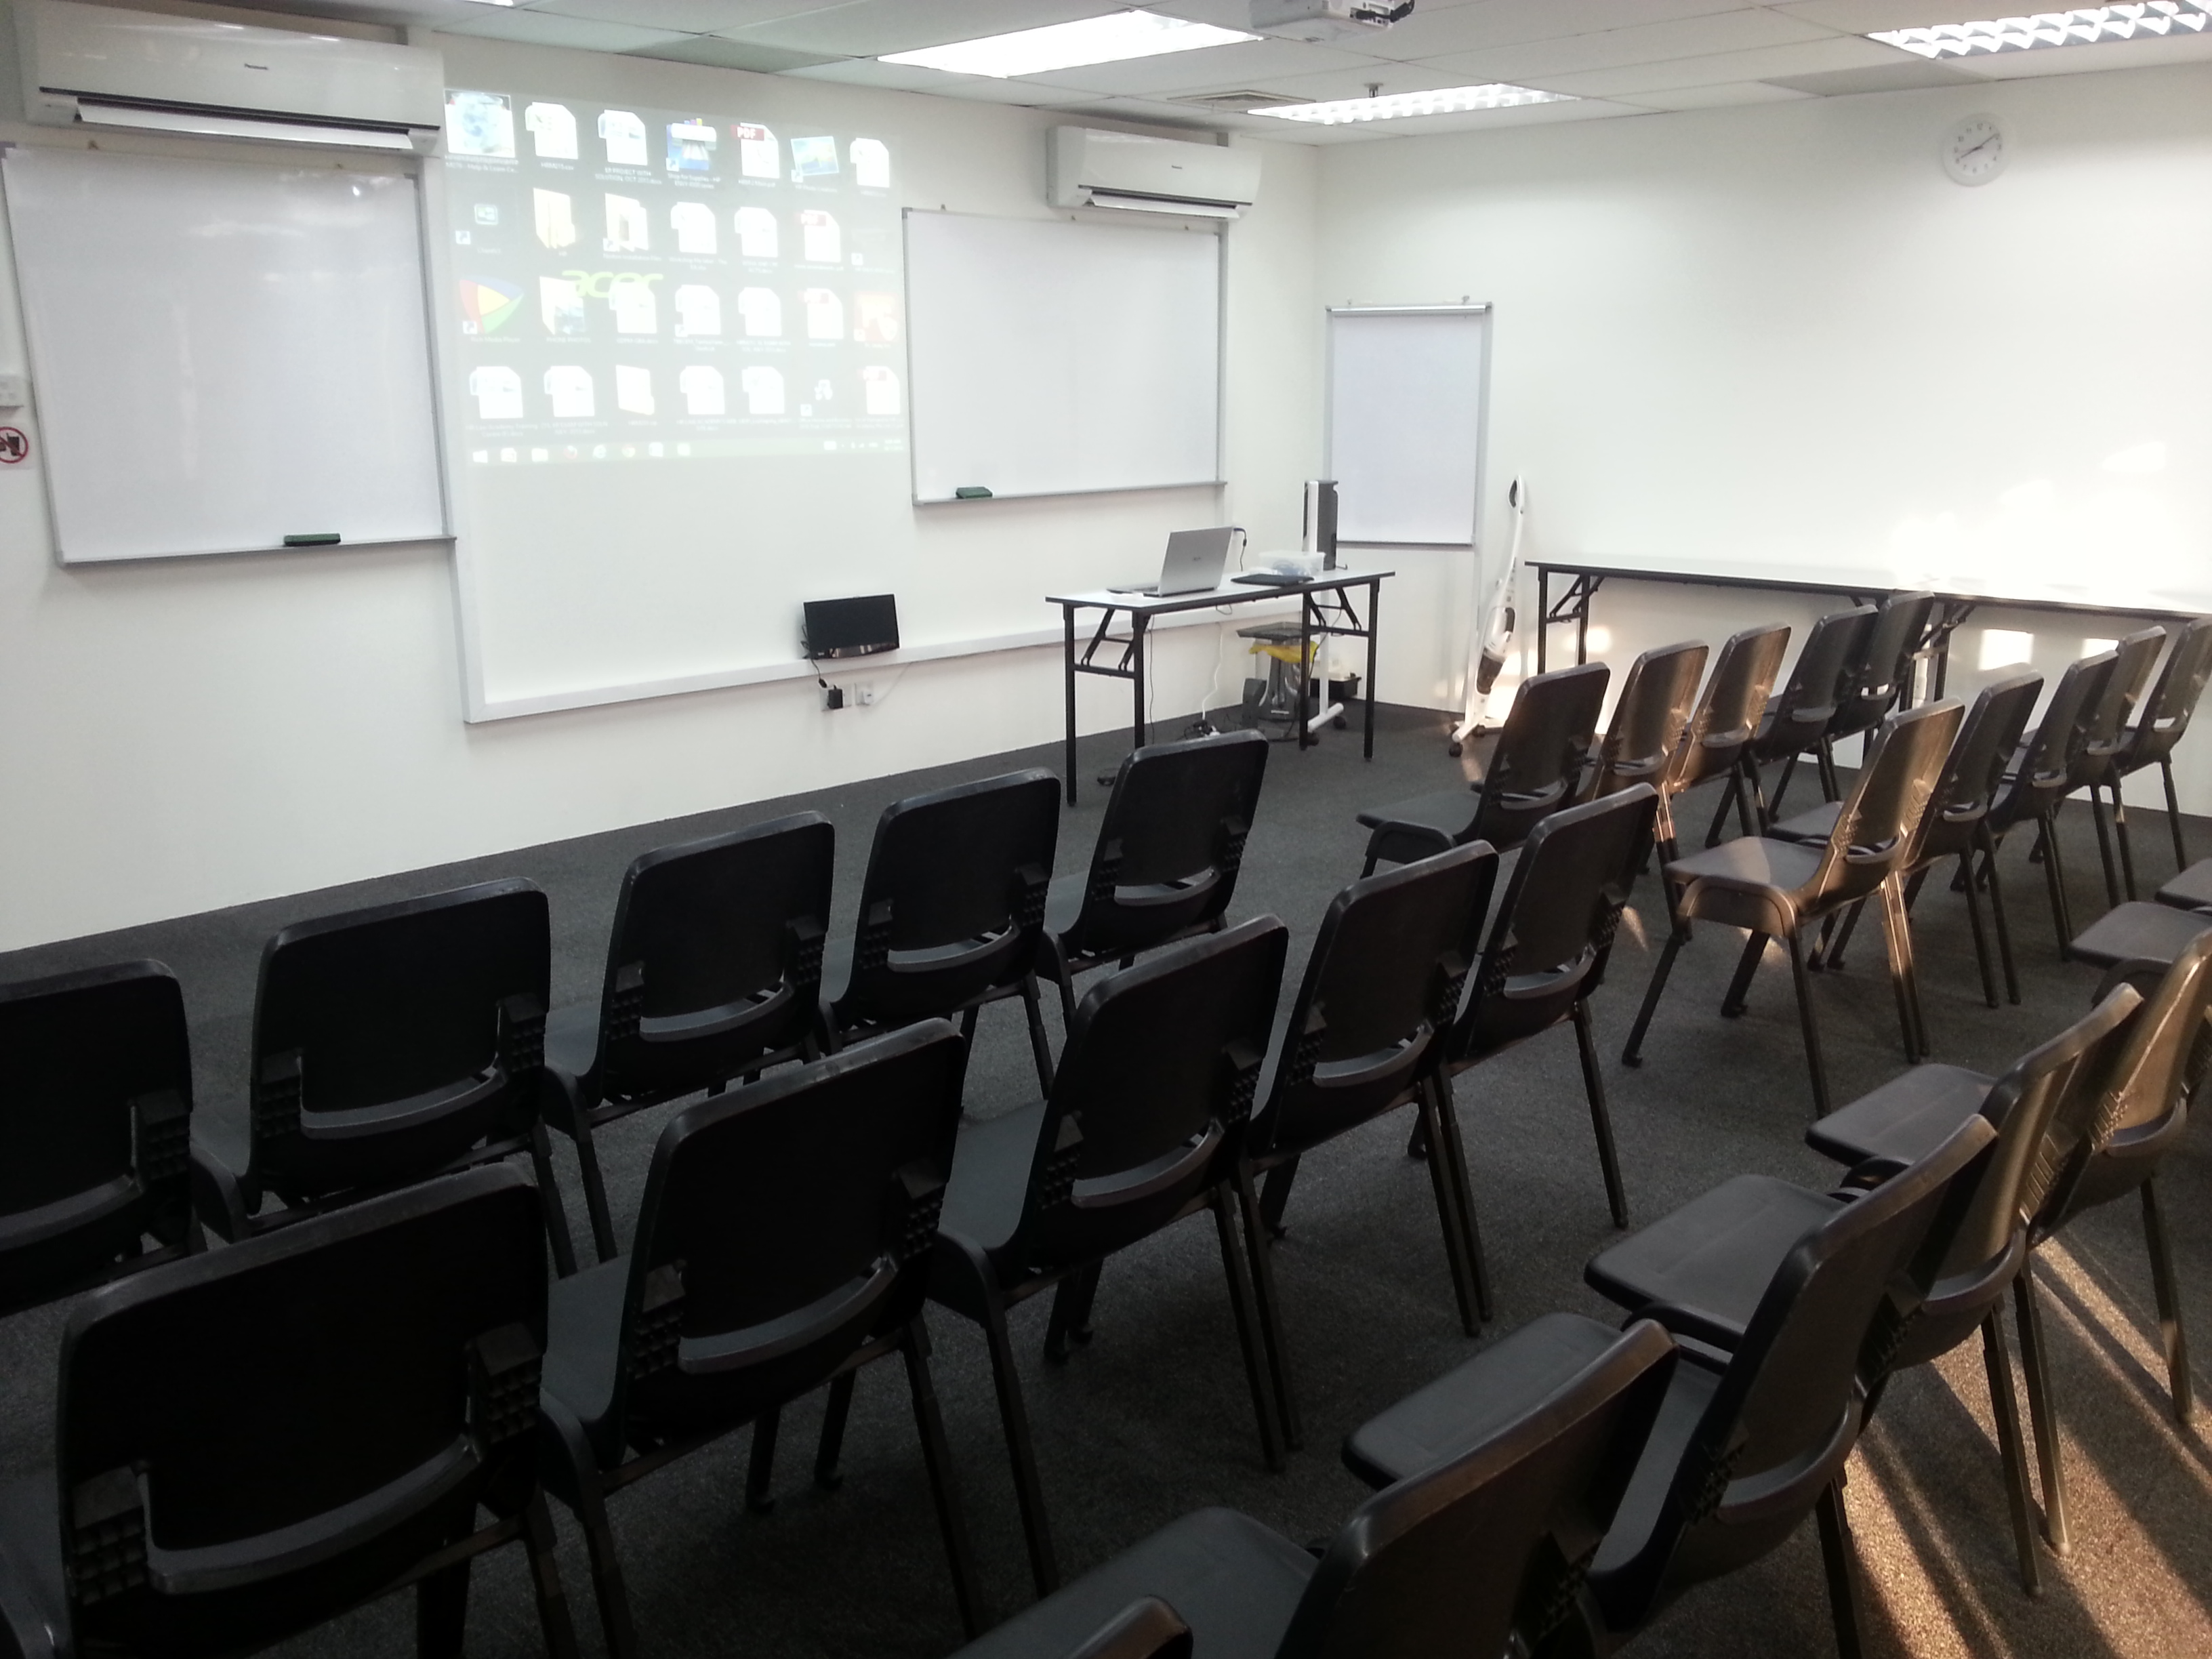 Seminar Room Rental Singapore Seating Arrangement 4